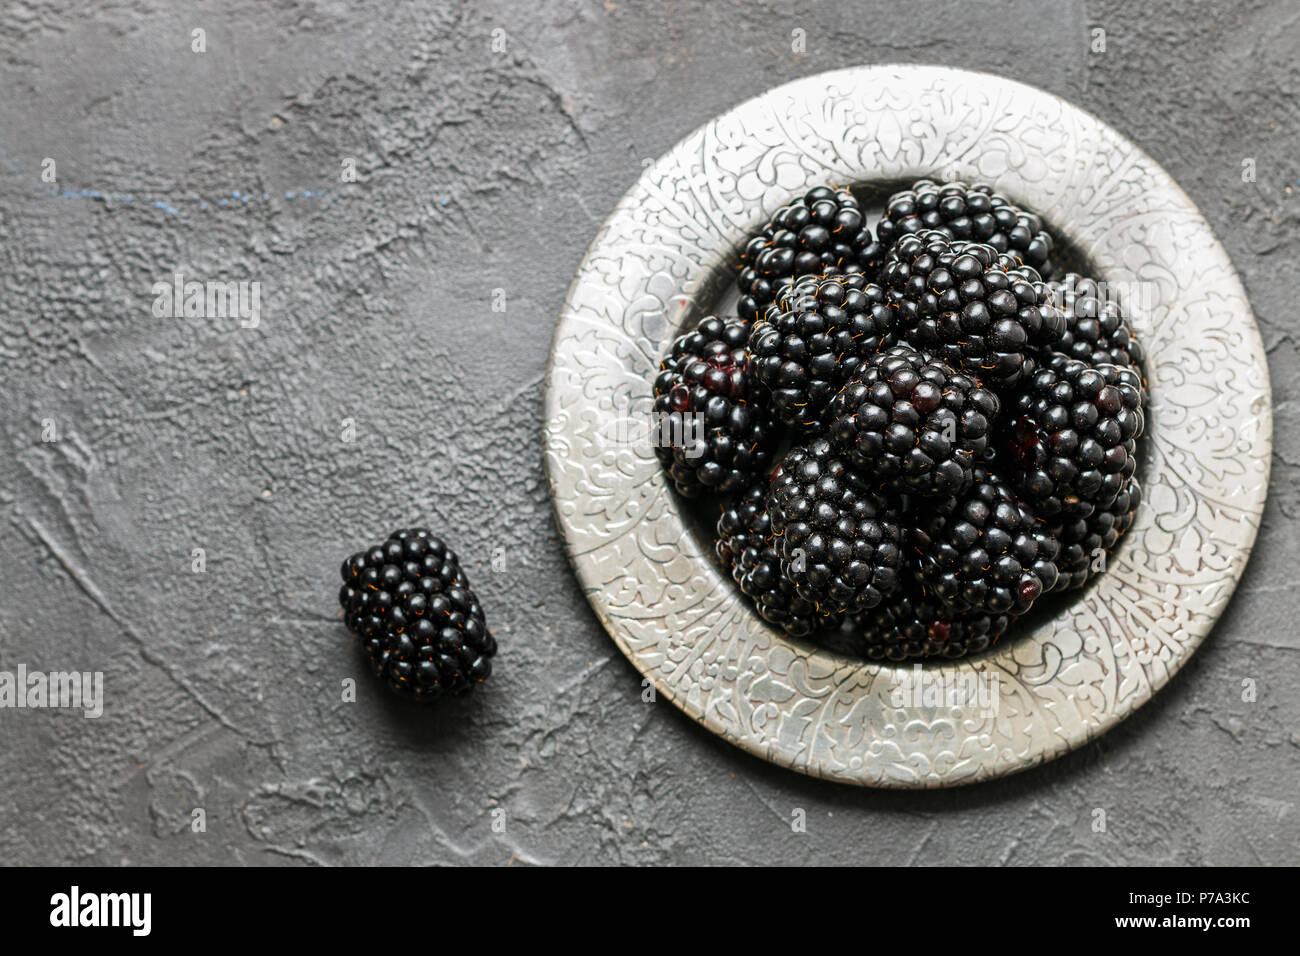 Ripe berries. Fresh juicy organic BlackBerry. Selective focus, top view, and copy space - Stock Image